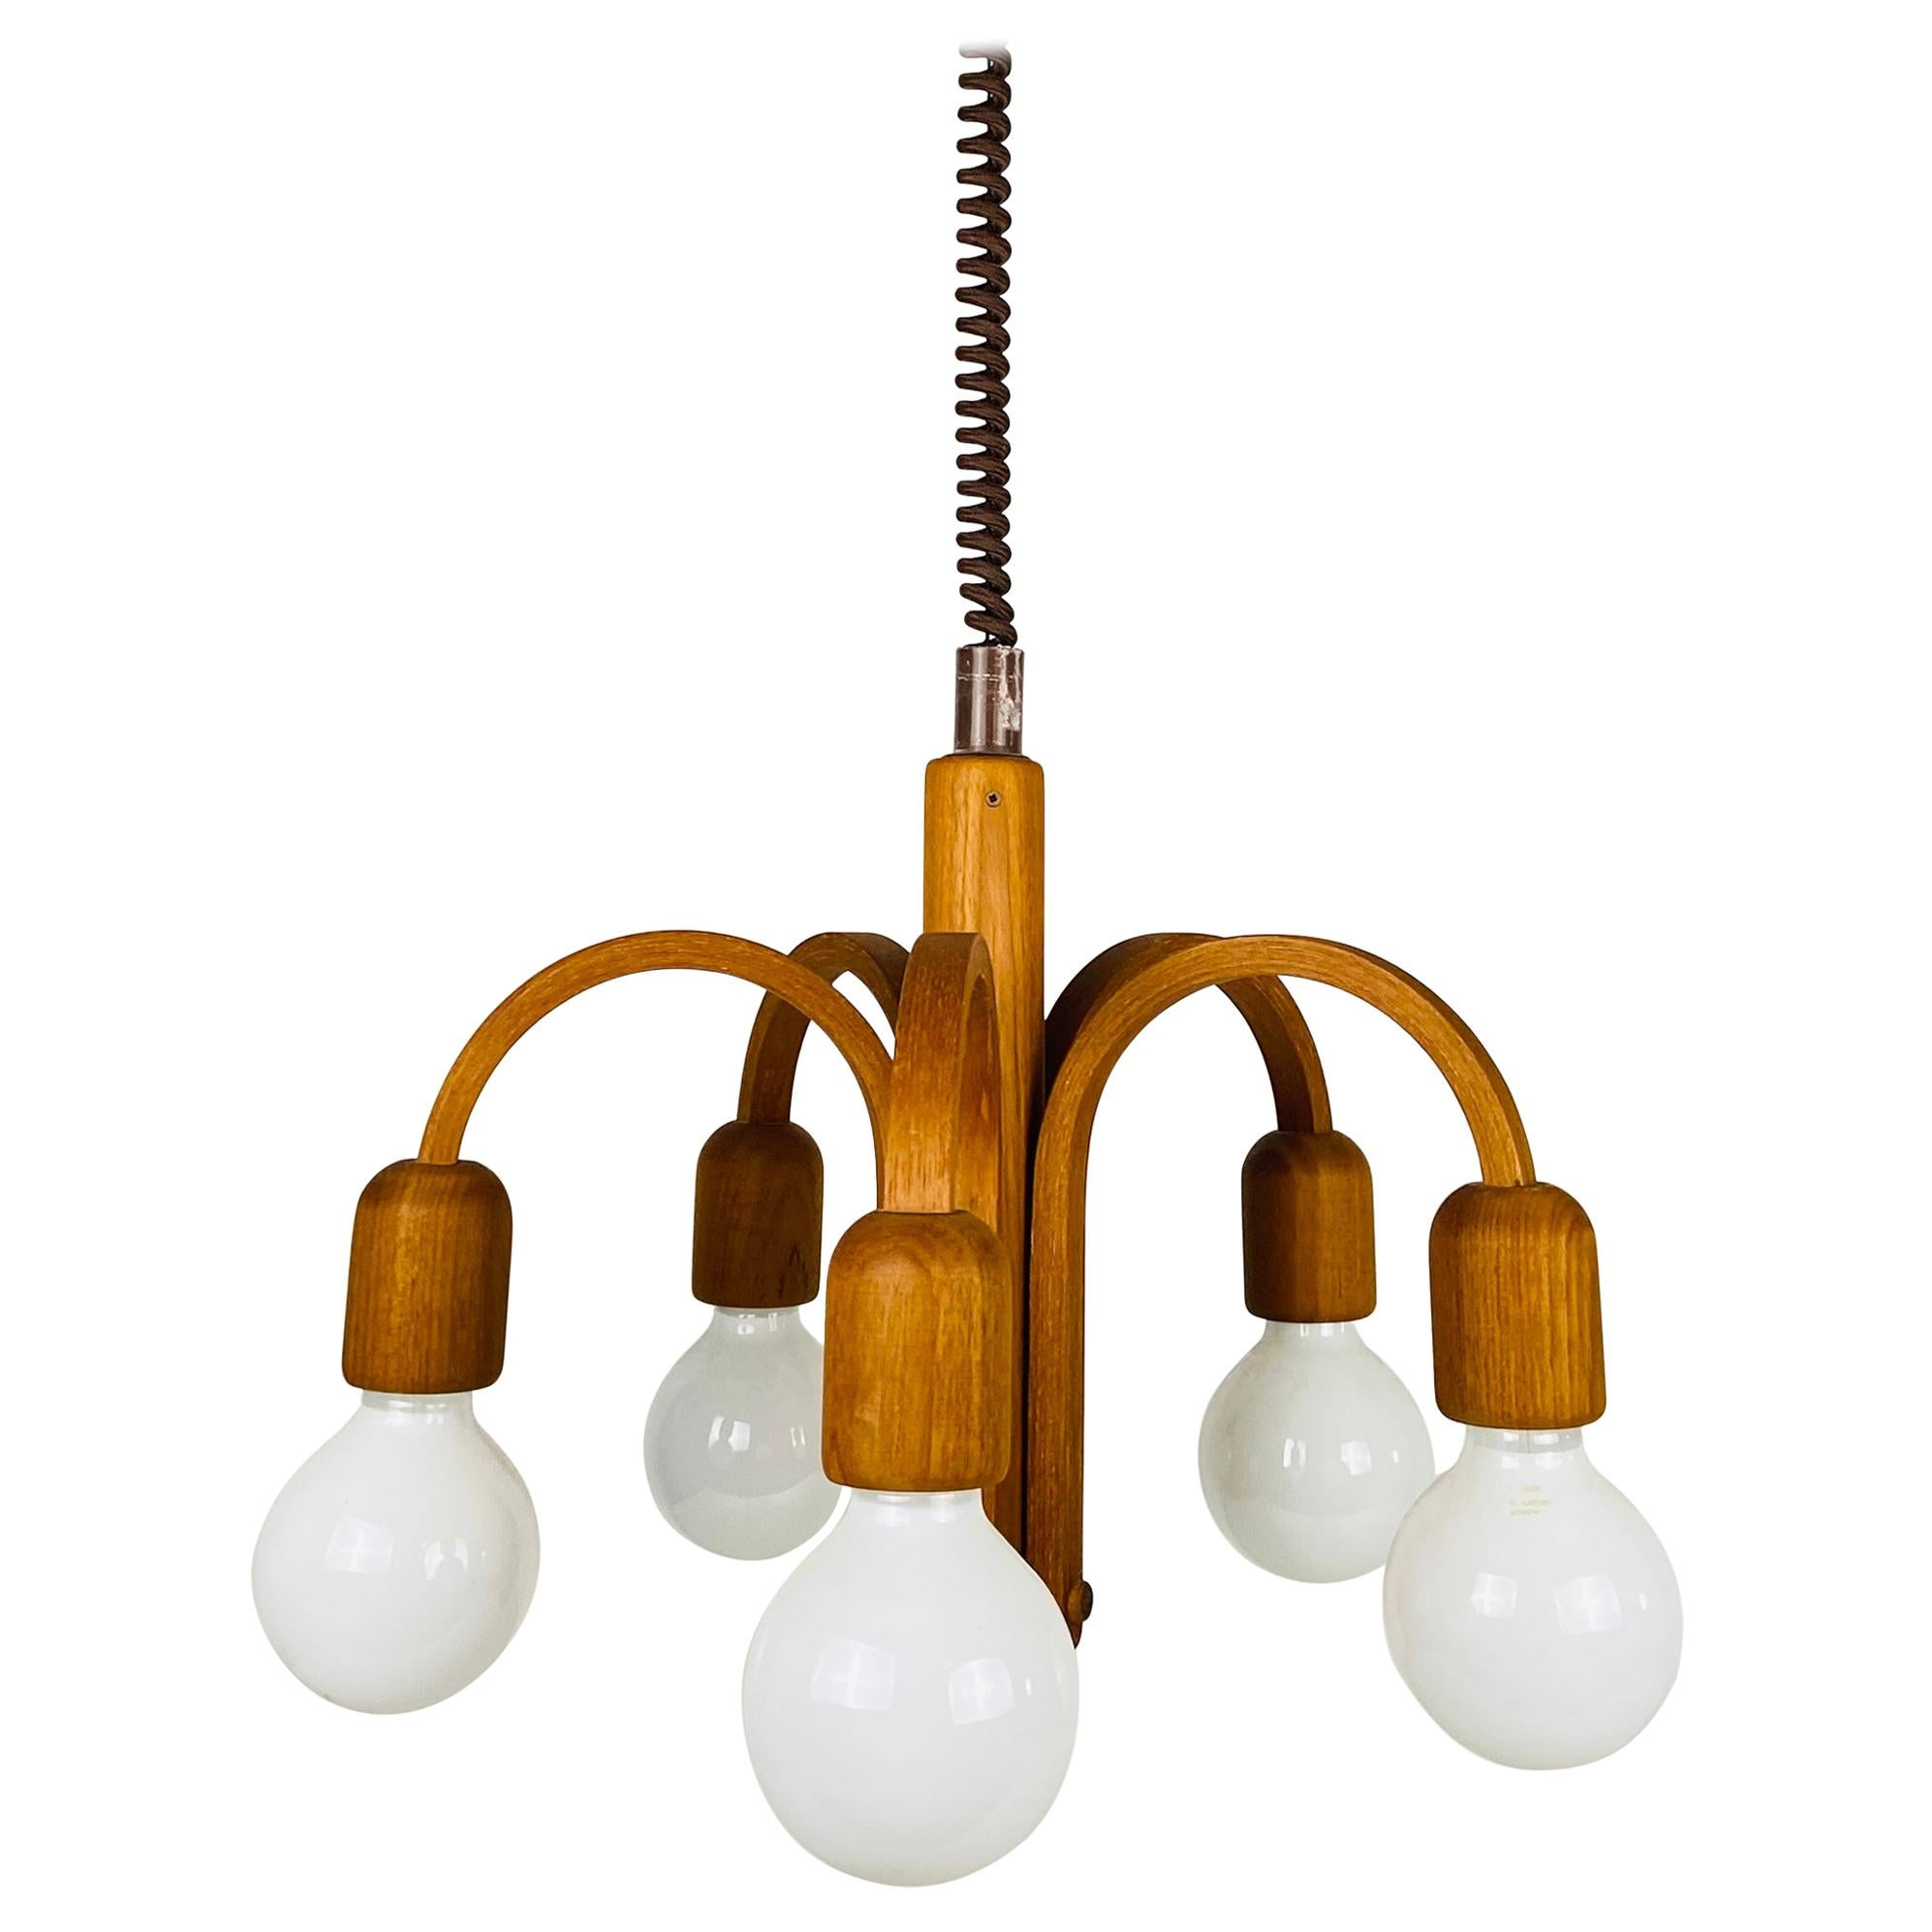 Midcentury Teak Pendant Lamp with 5 Arms by Domus, 1960s